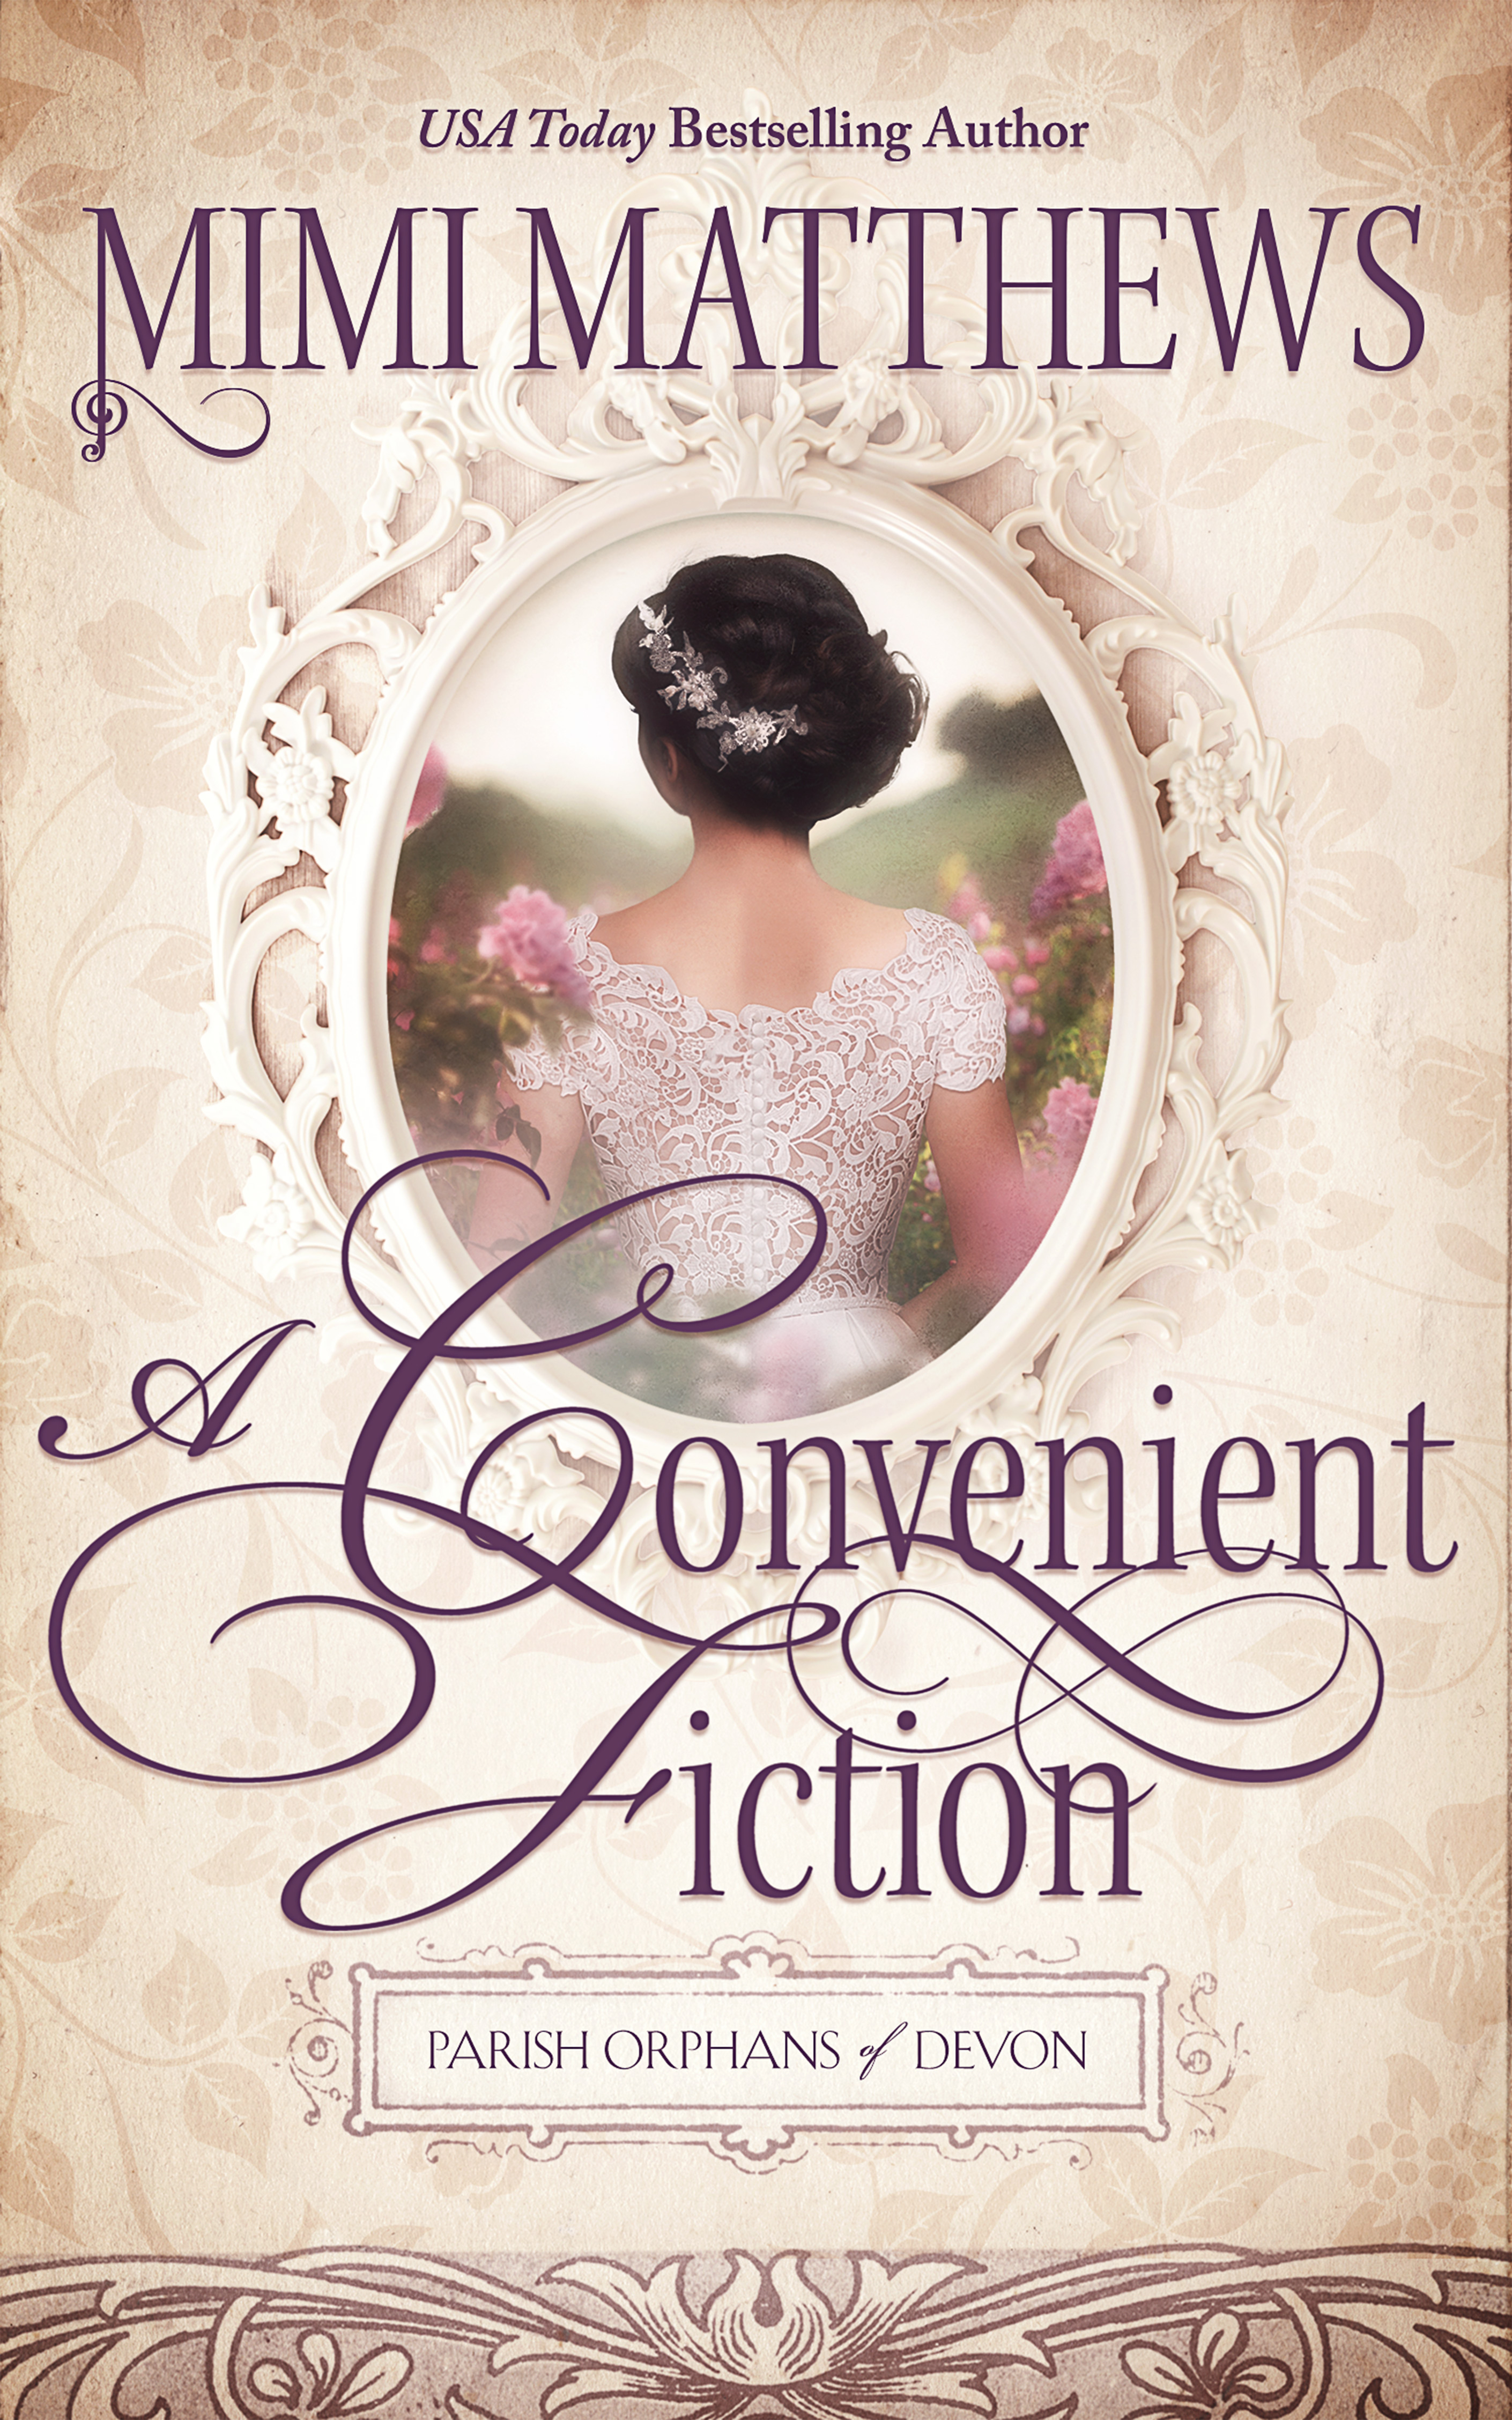 The Convenient Ficton, by Mimi Matthews (2019)